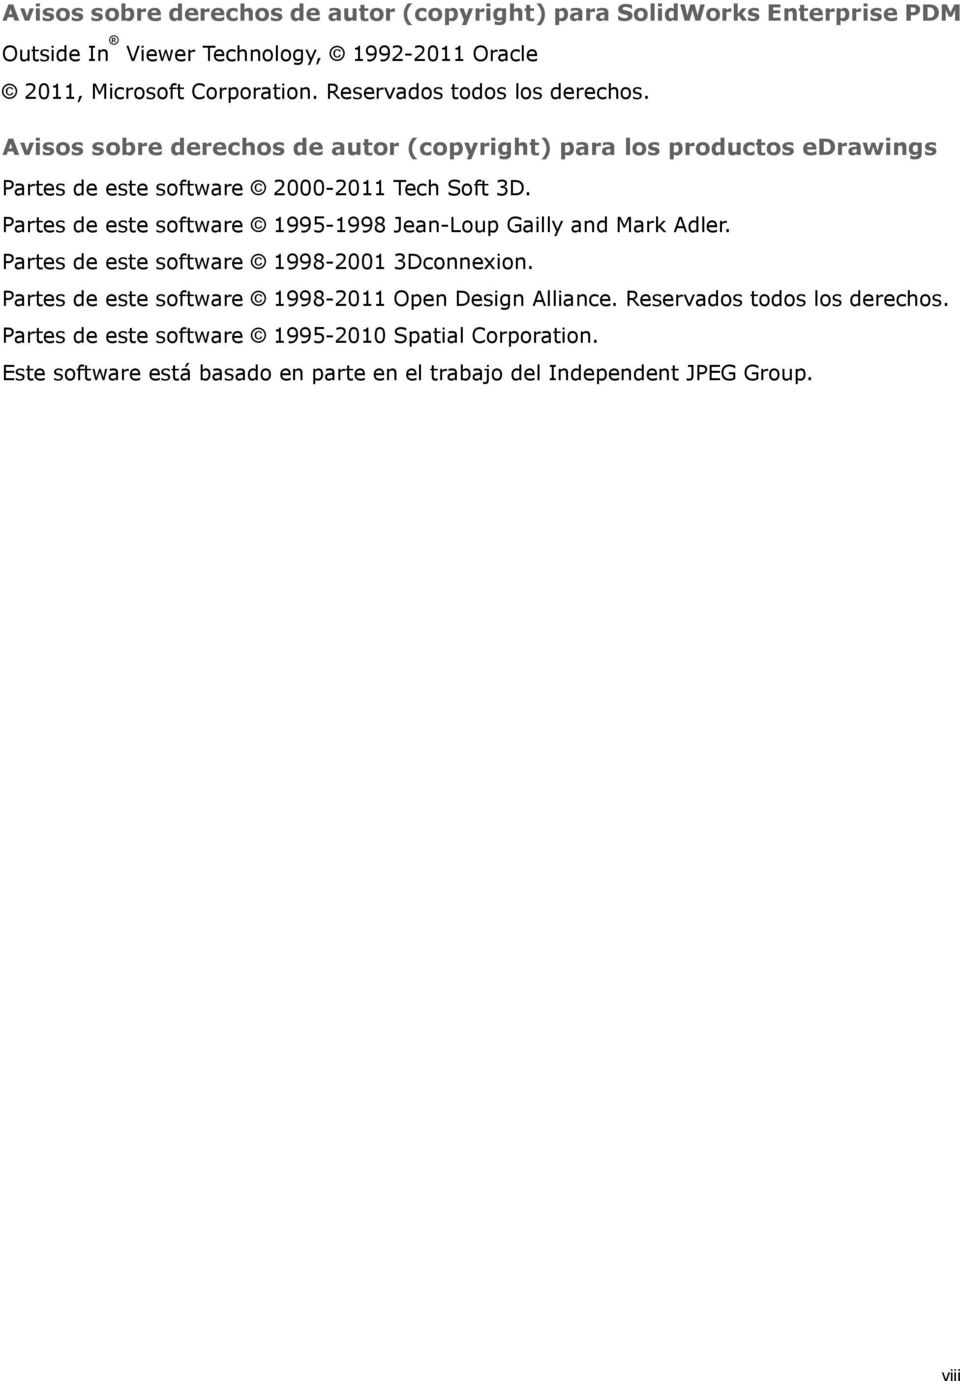 Partes de este software 1995-1998 Jean-Loup Gailly and Mark Adler. Partes de este software 1998-2001 3Dconnexion.